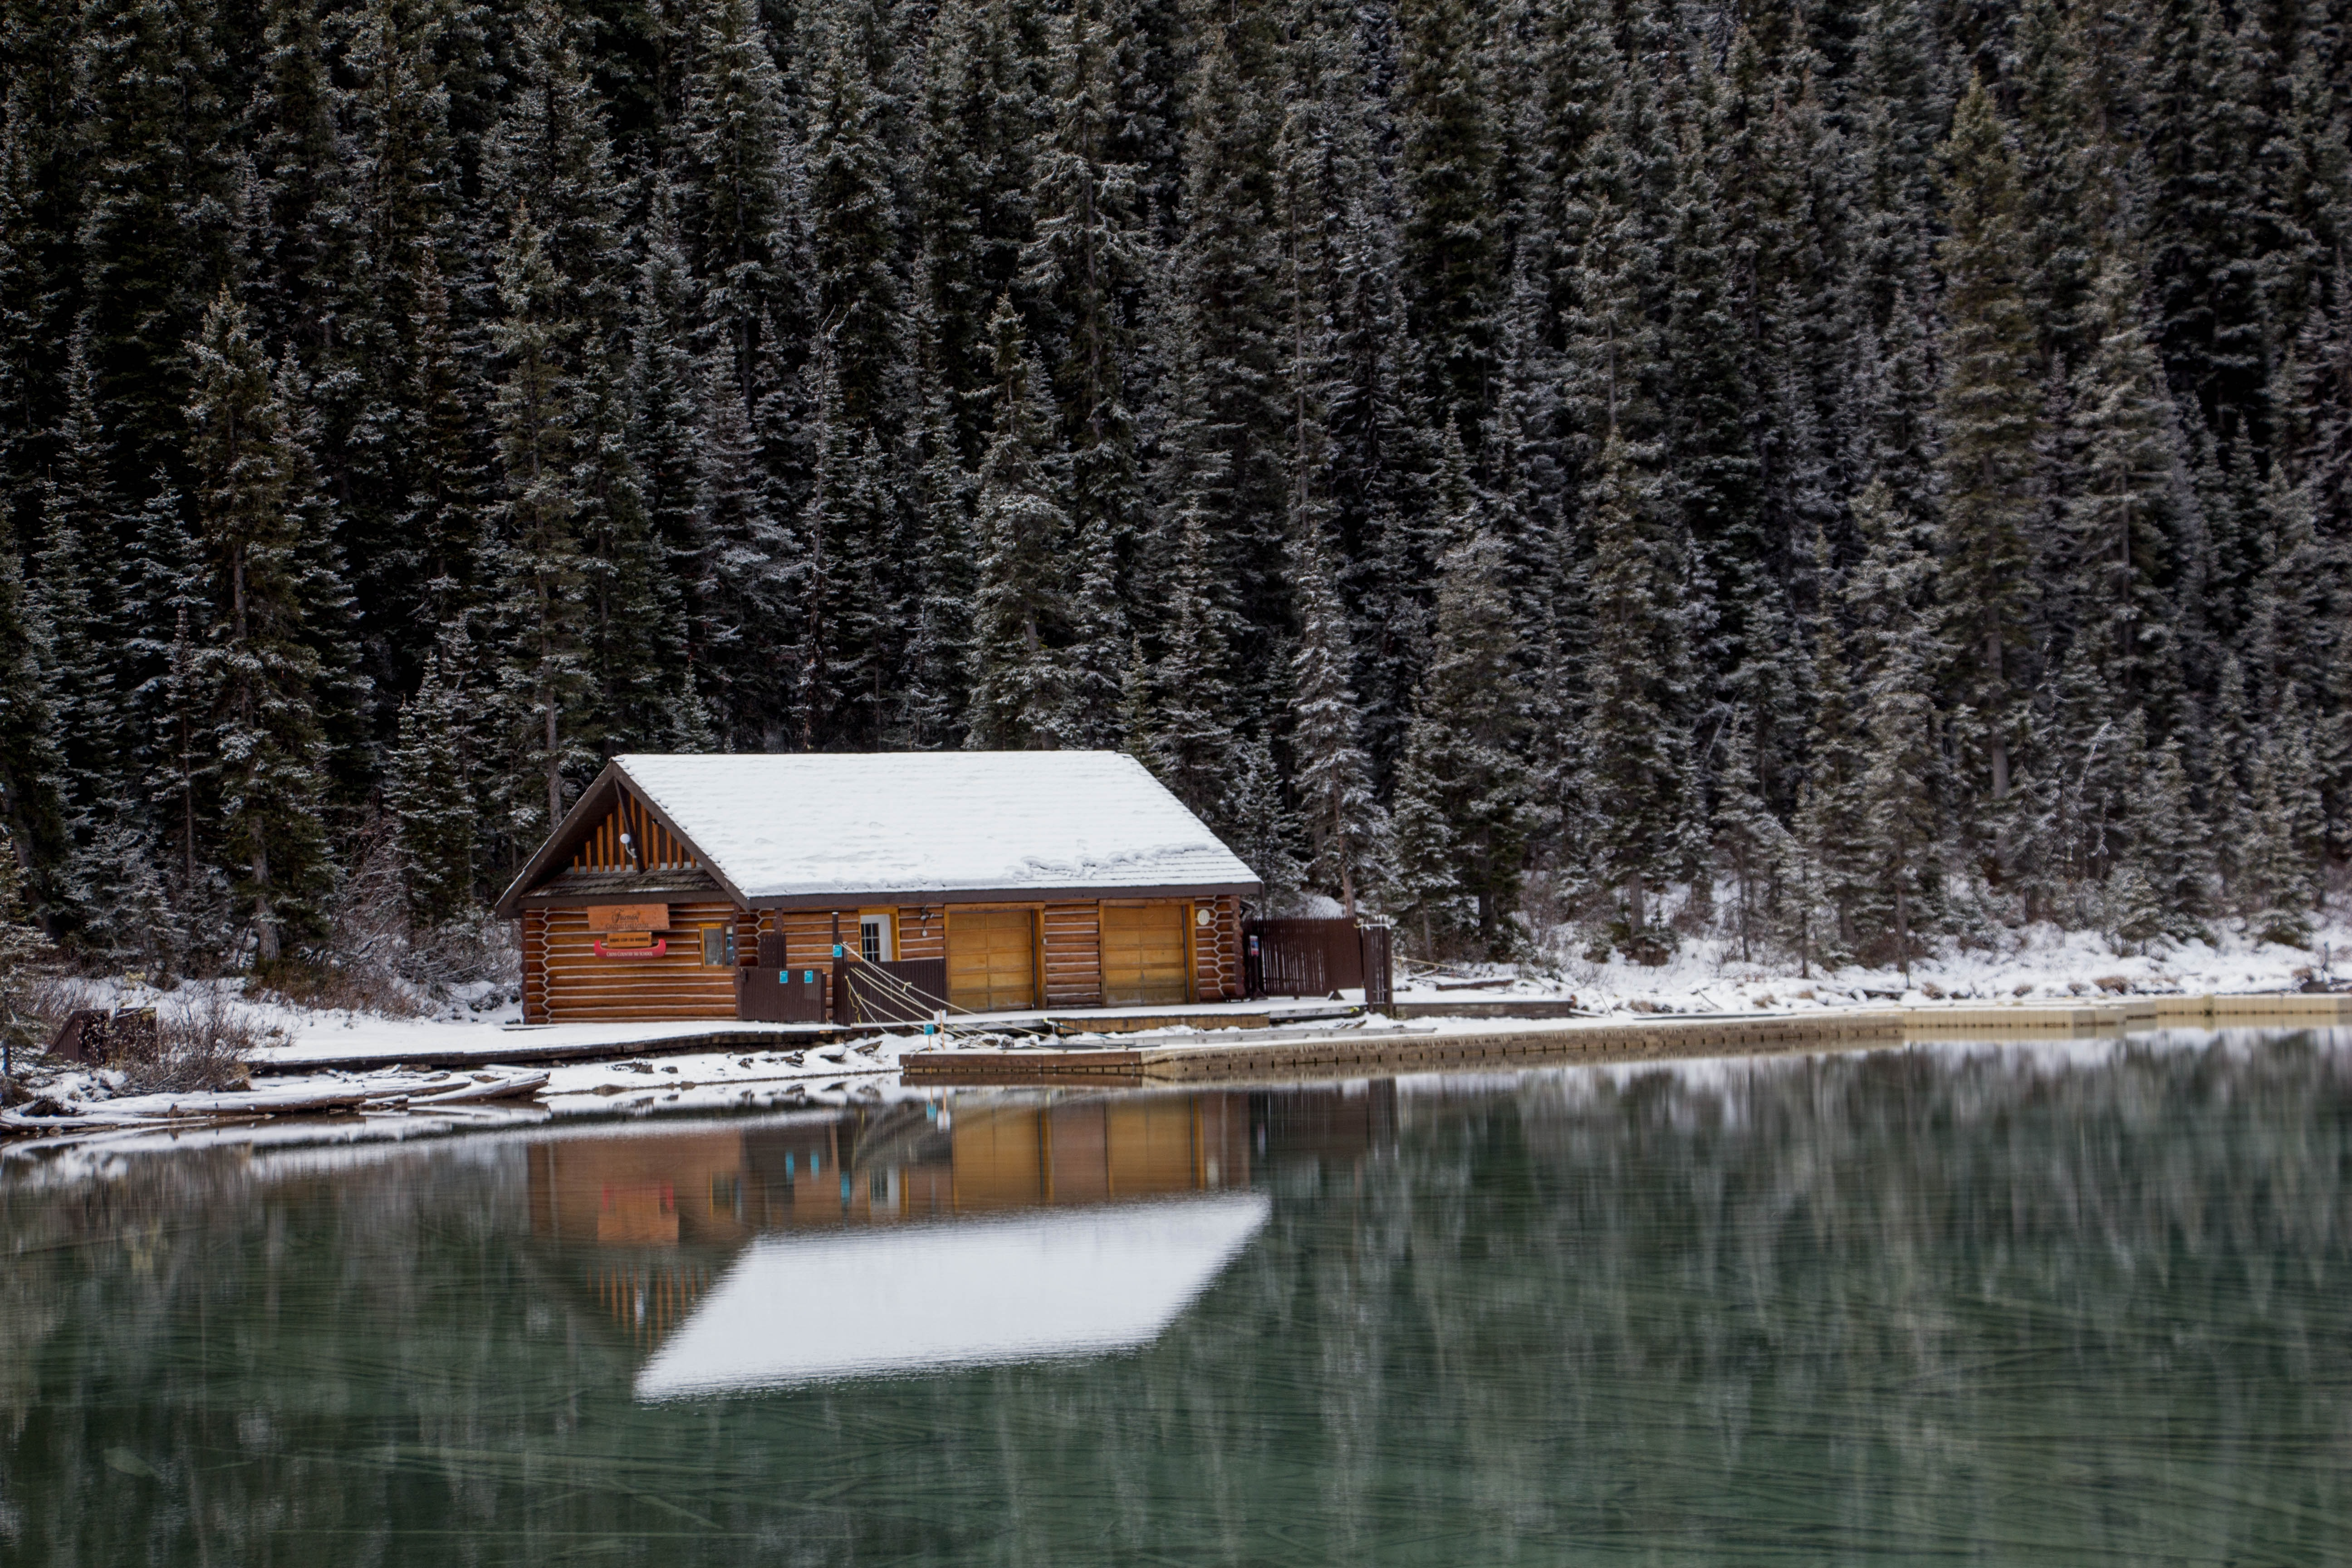 brown wooden house near trees and body of water